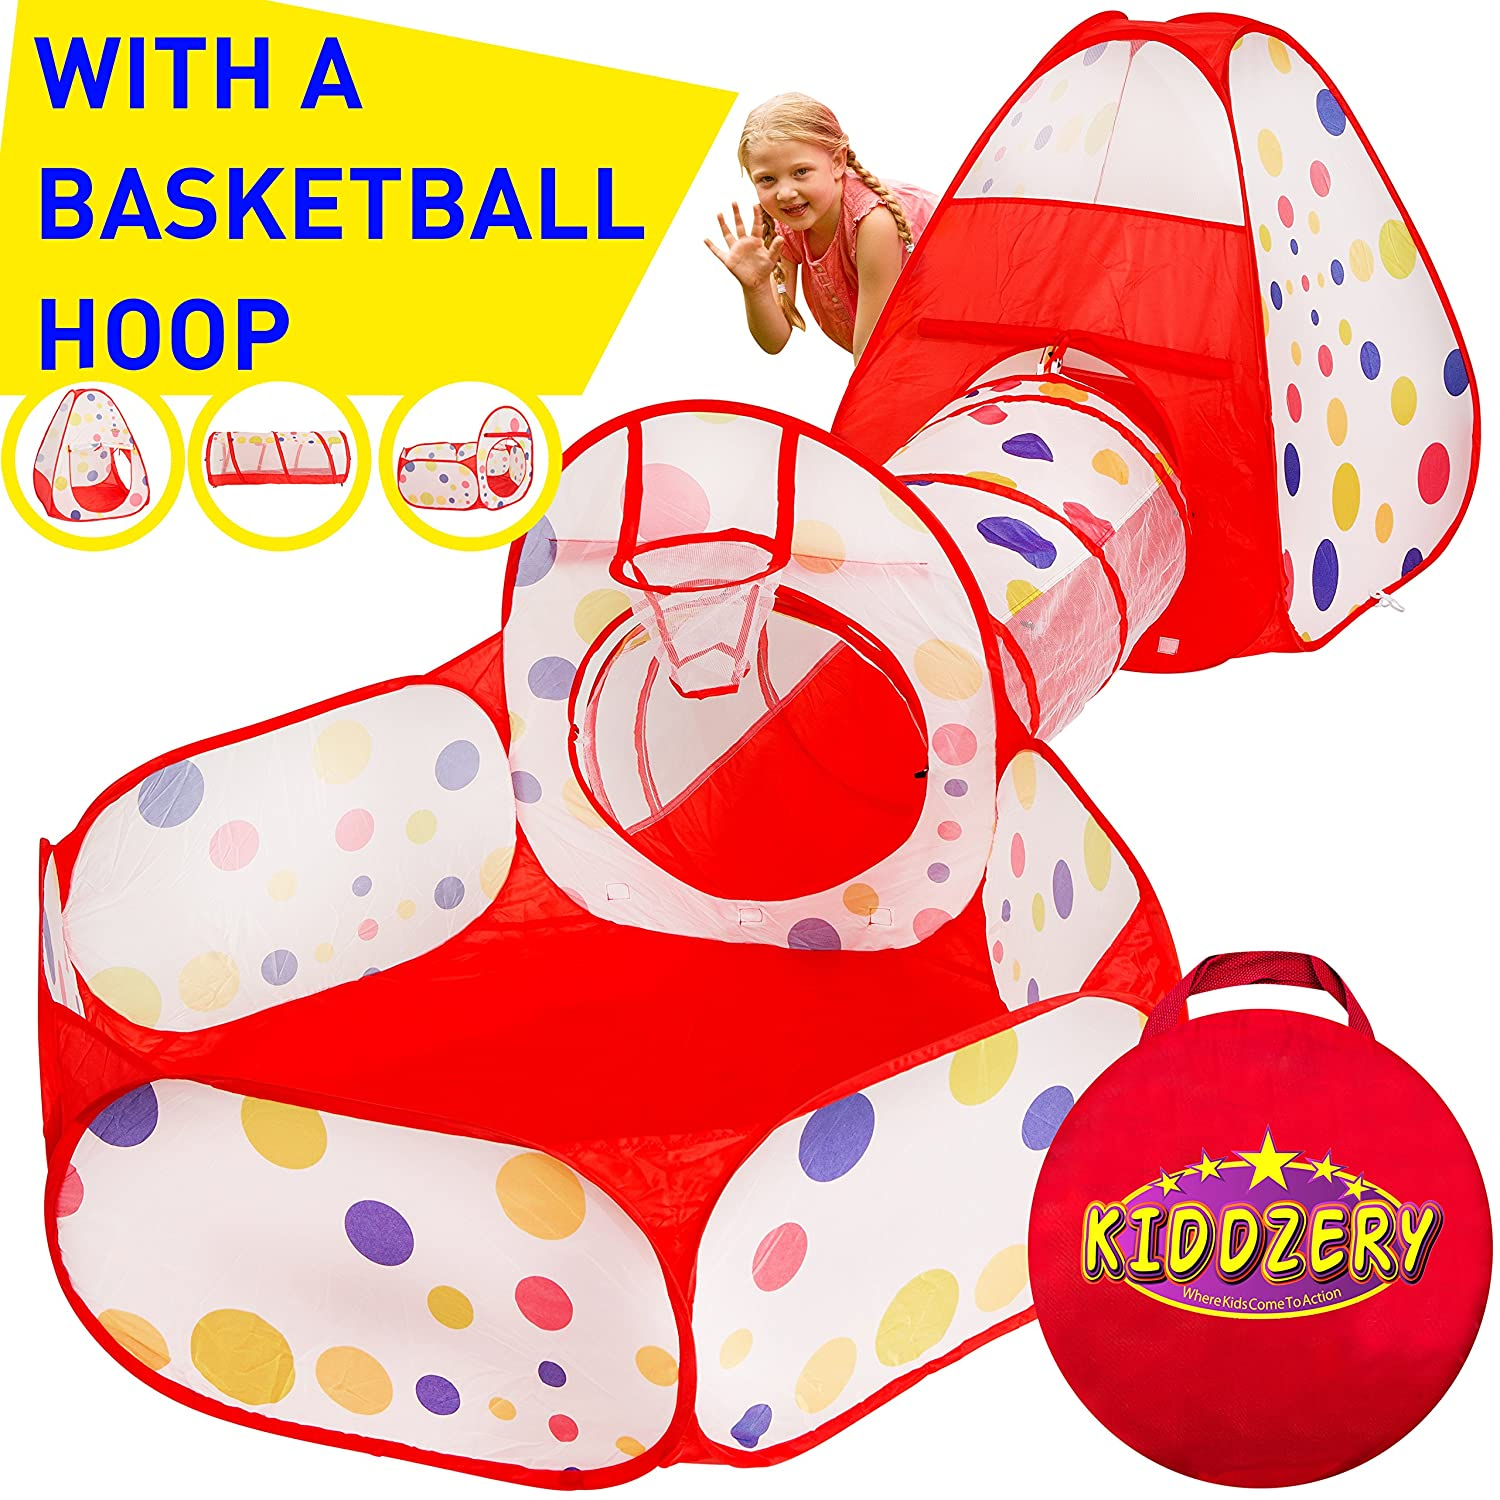 kiddzery 3pc Kids Play Tent Crawl Tunnel and Ball Pit with Basketball Hoop  – Durable Pop Up Playhouse Tent for Boys, Girls, Babies, Toddlers & Pets –